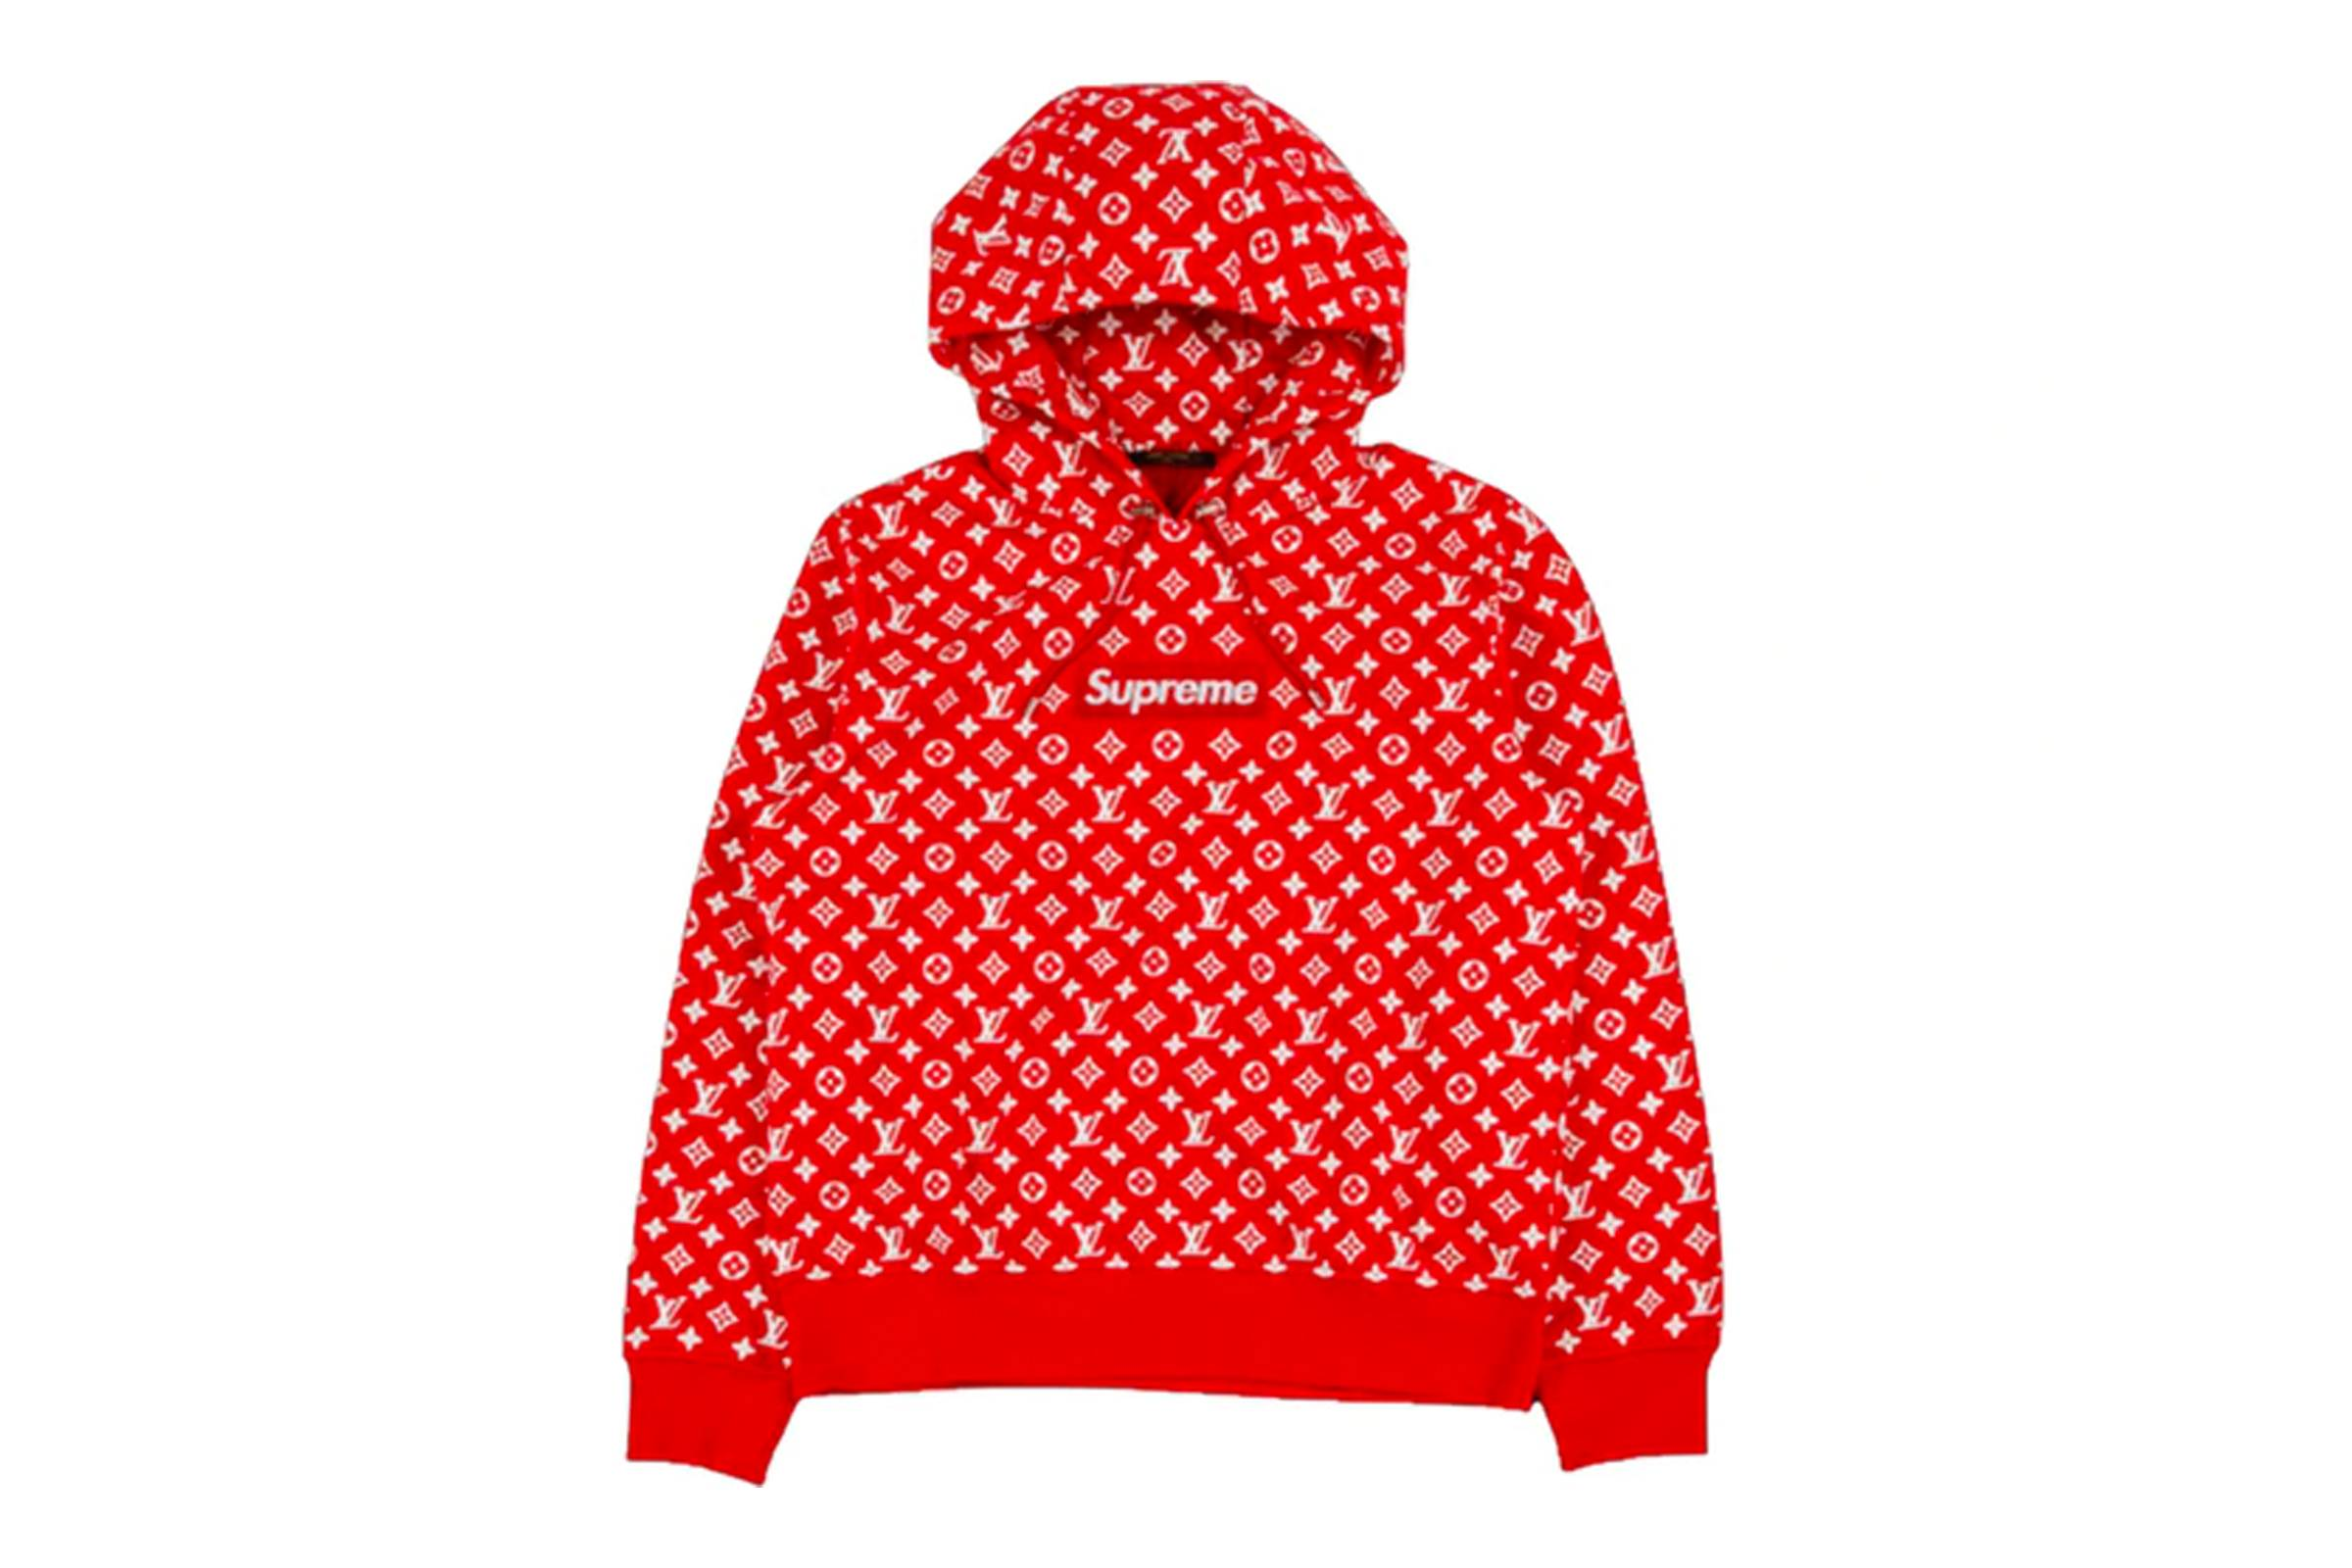 Supreme x Louis Vuitton Box Logo Hooded Sweatshirt